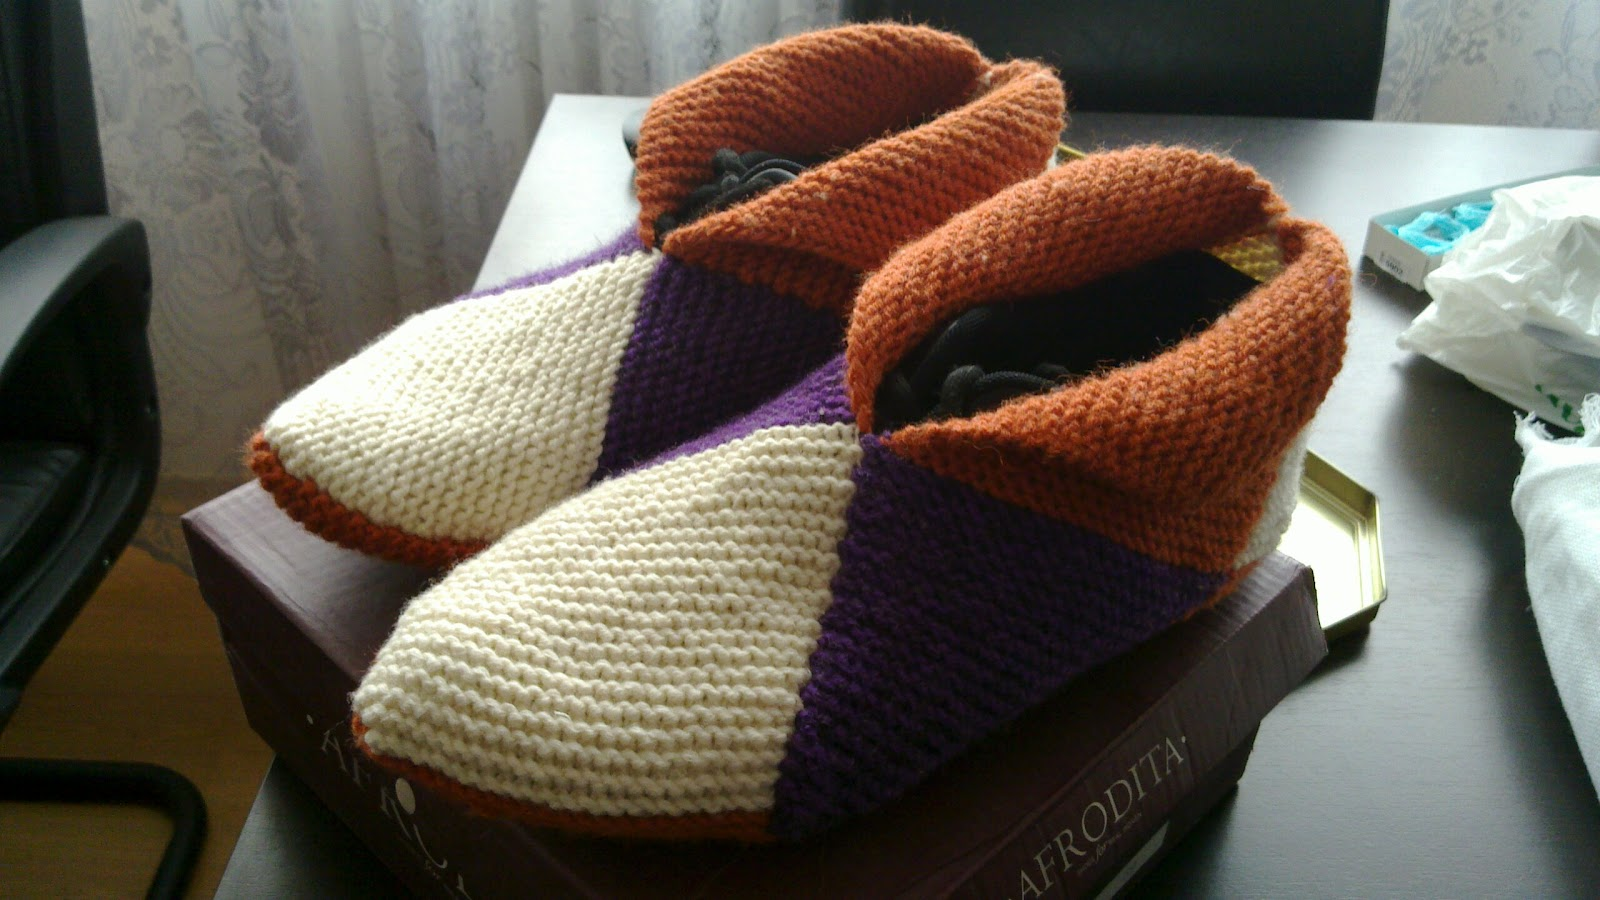 Knitting Pattern Slippers Squares : The Good Housewife: Knitting Pattern Norwegian Slippers US Size 9